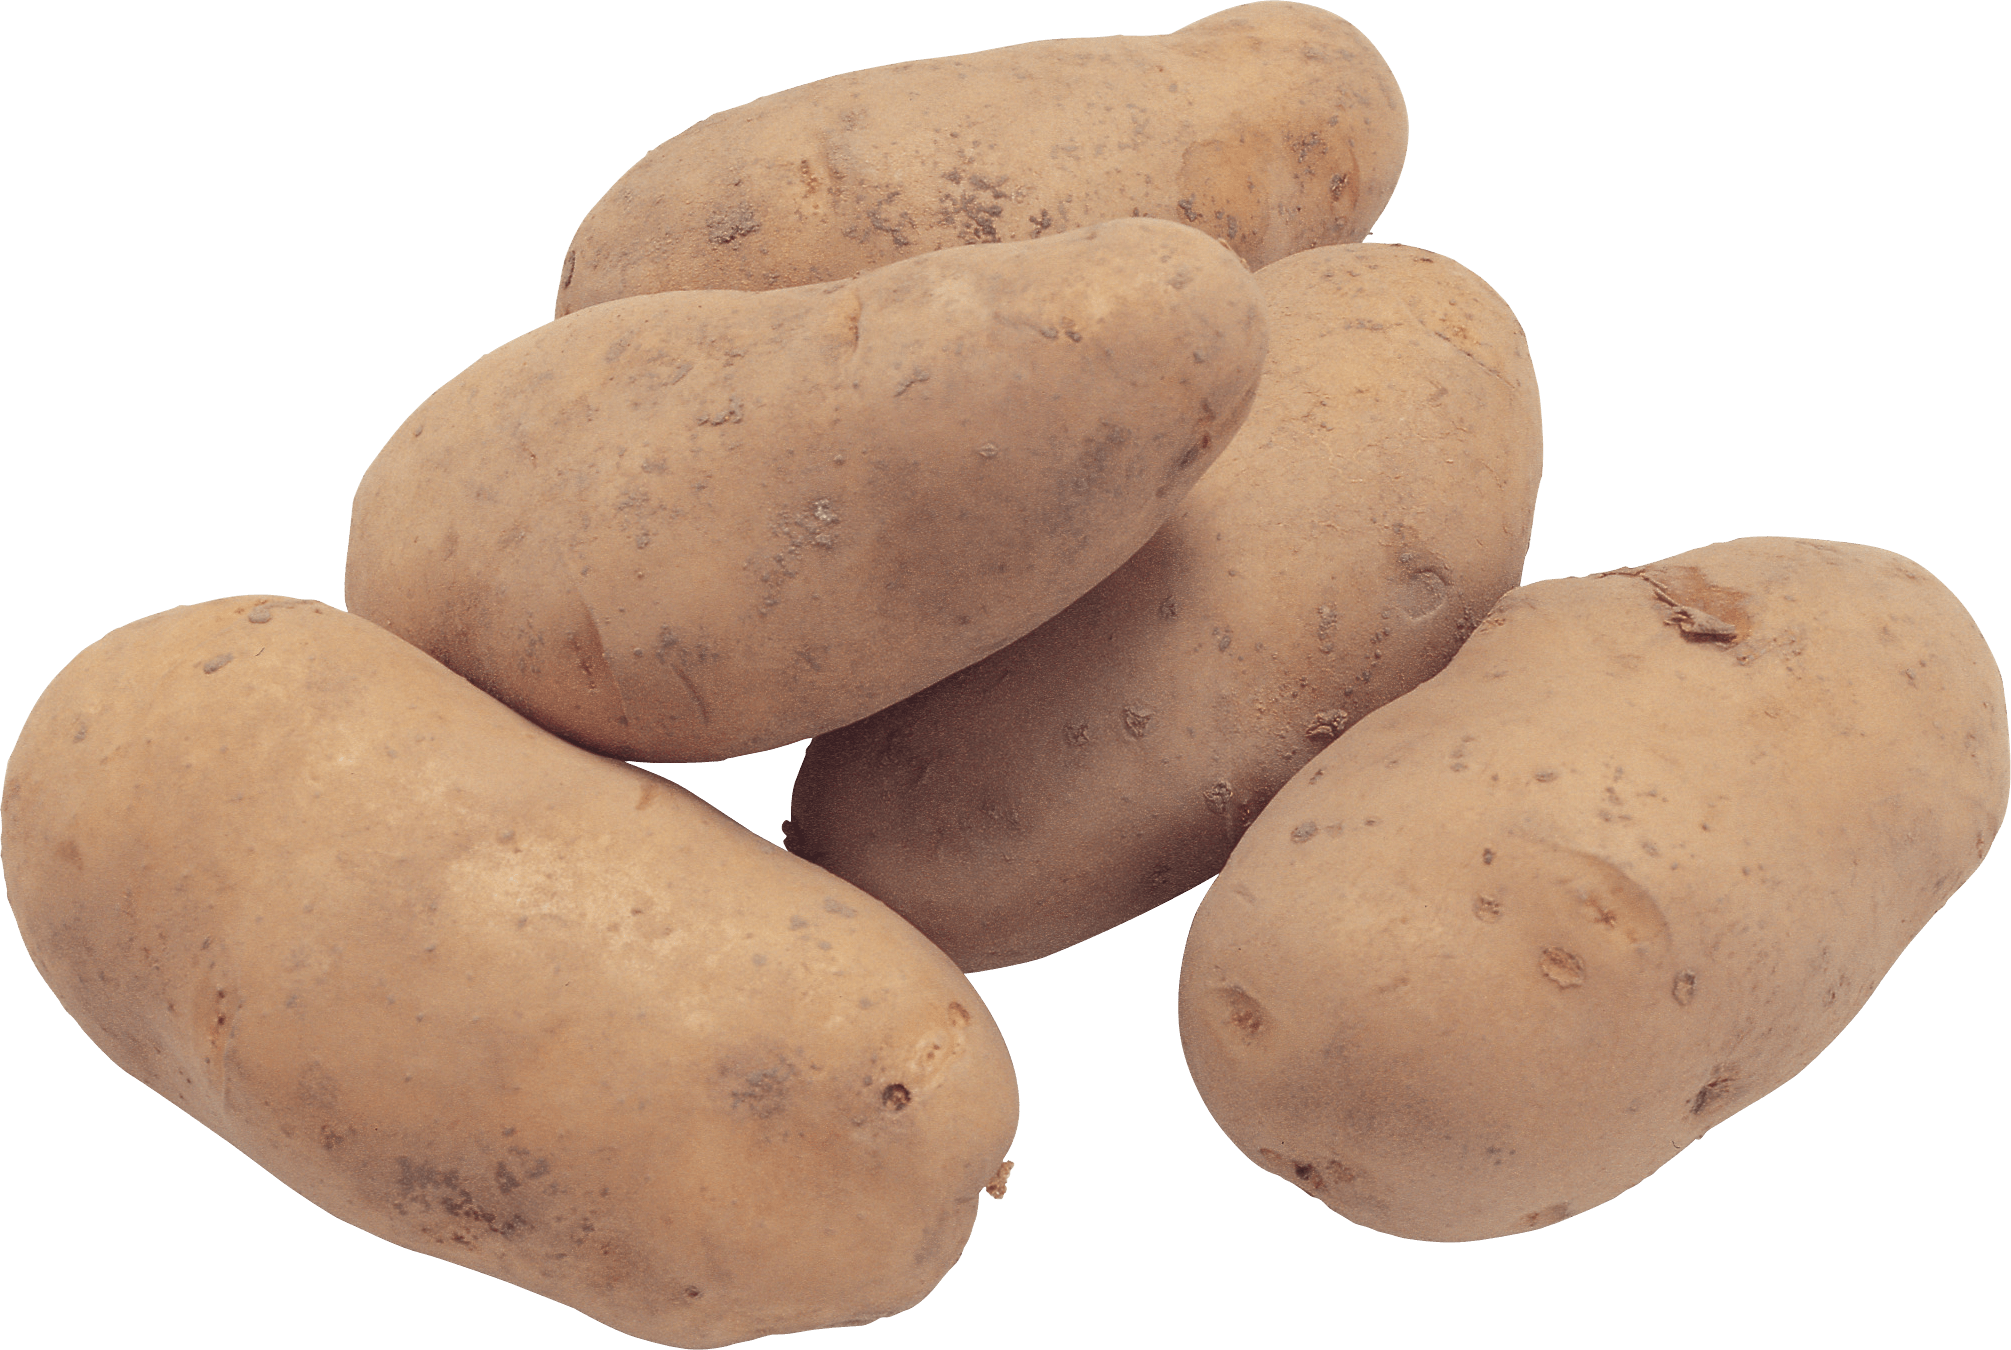 Potato Png Images PNG Image